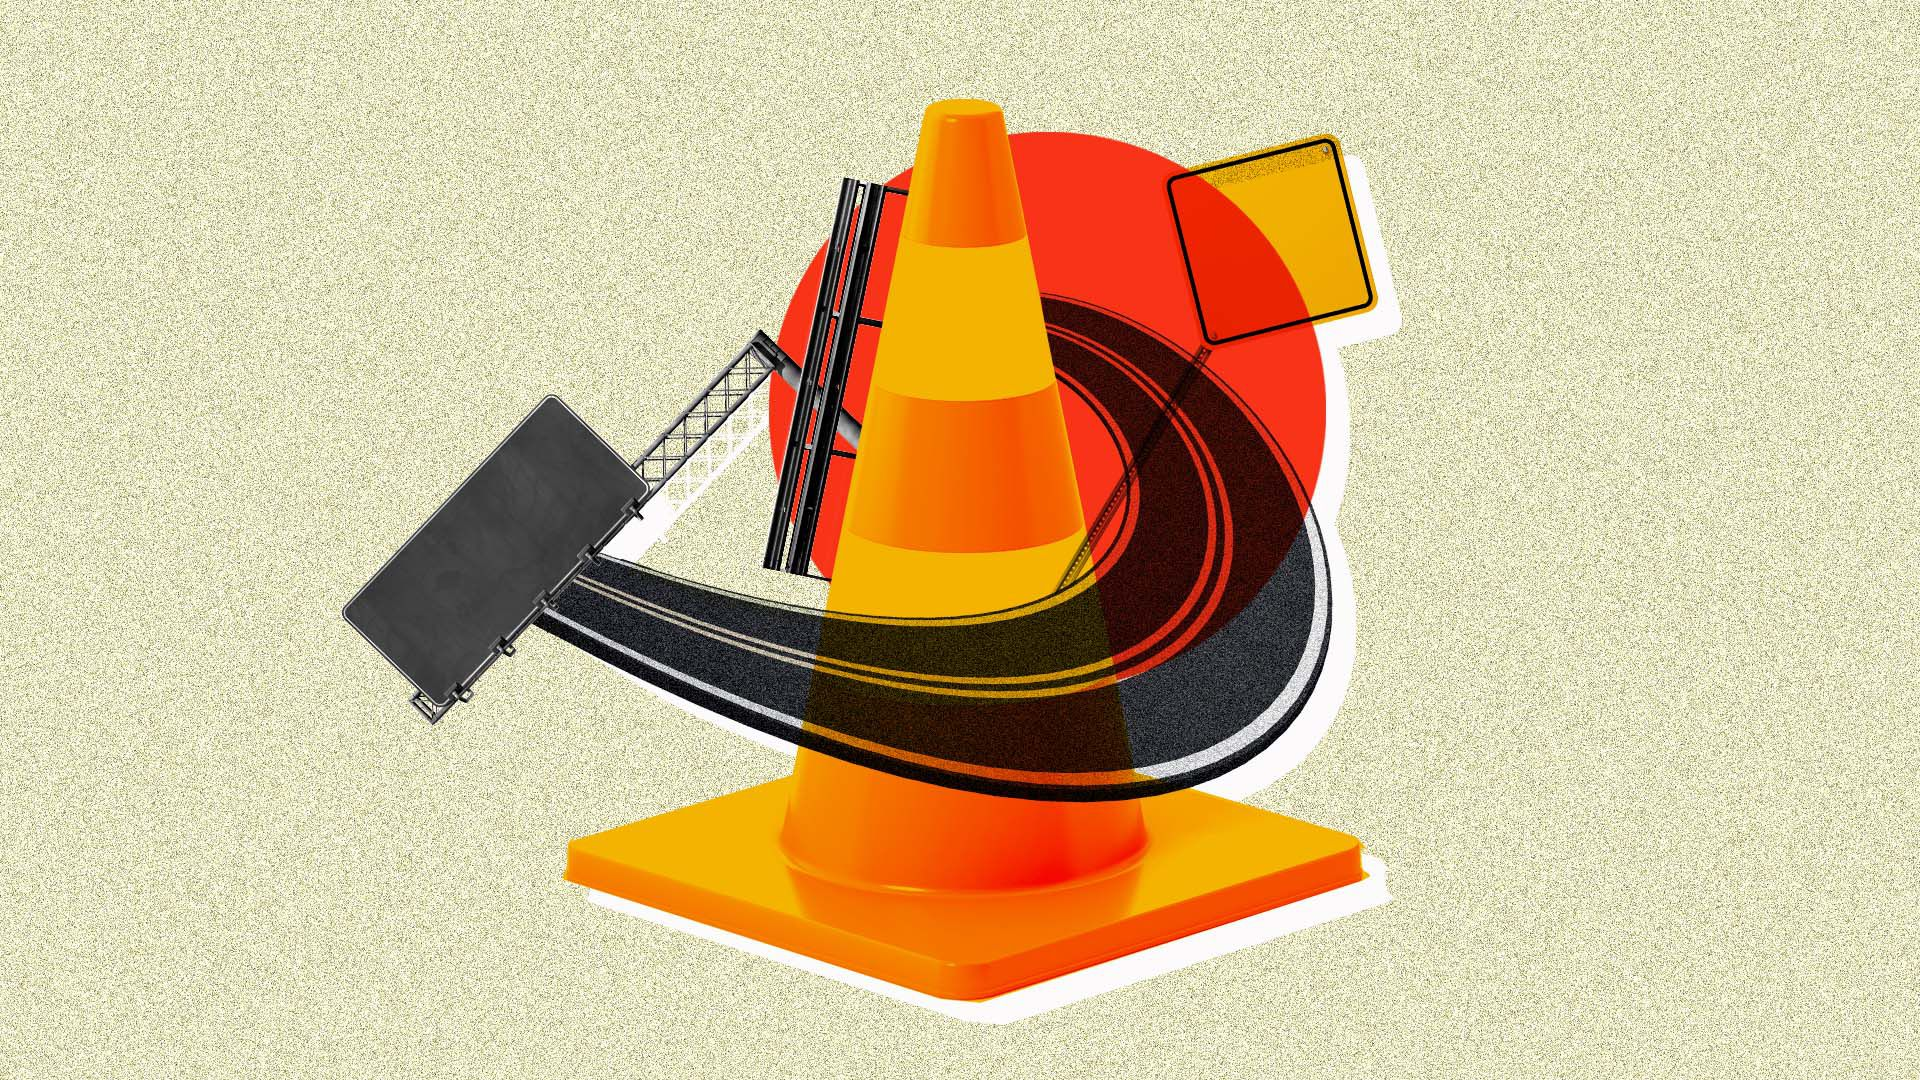 In this illustration, a road curves around a traffic cone.